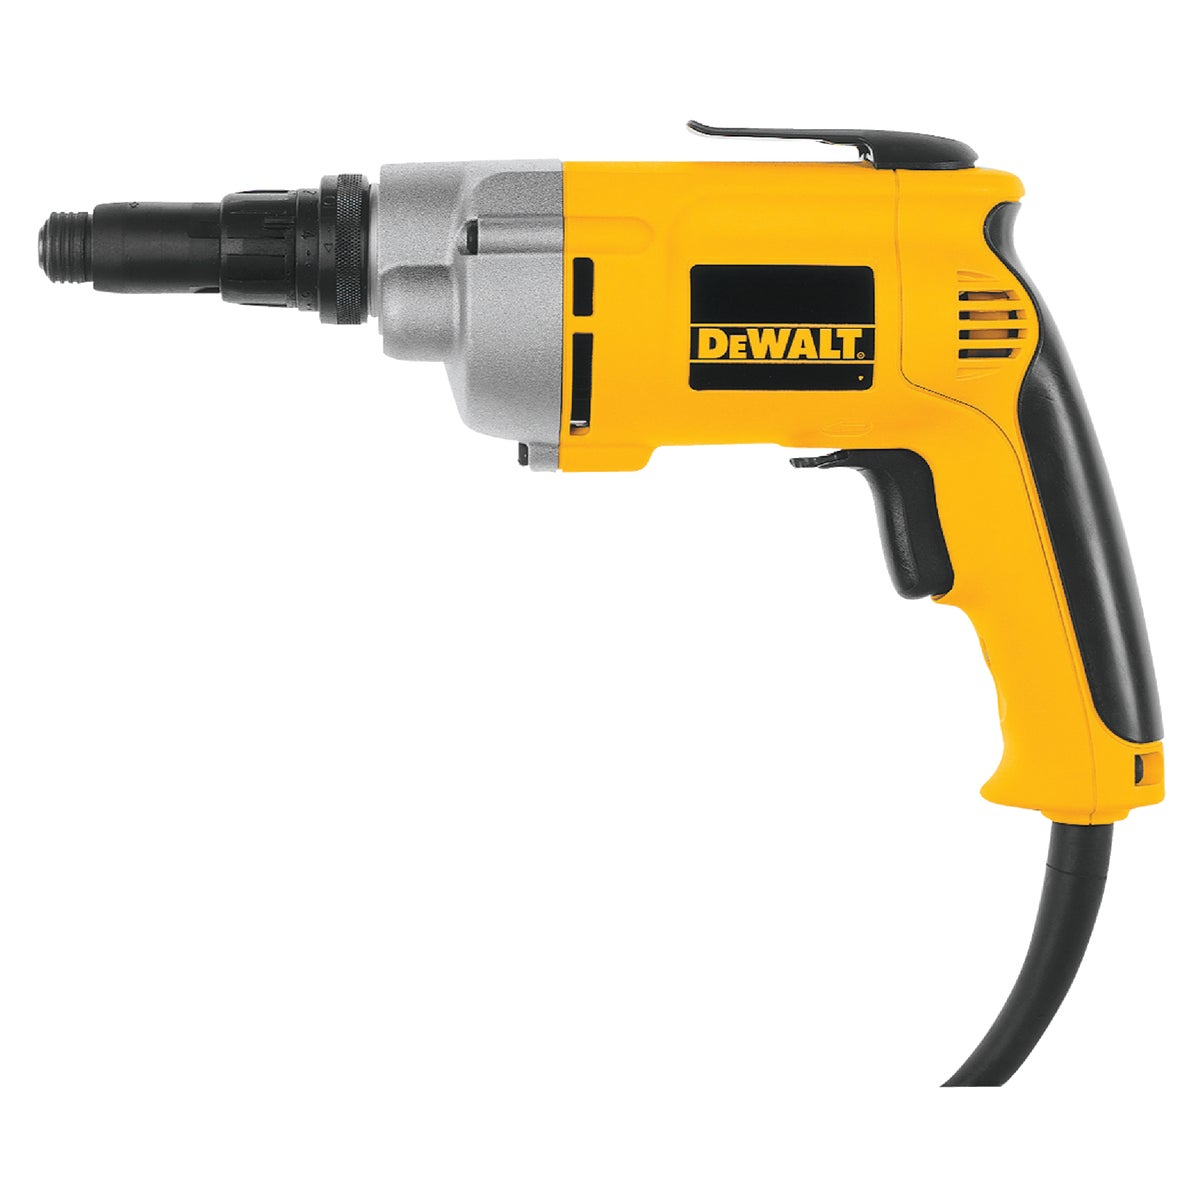 HEAVY DUTY SCREWDRIVER - DW268 by DeWalt